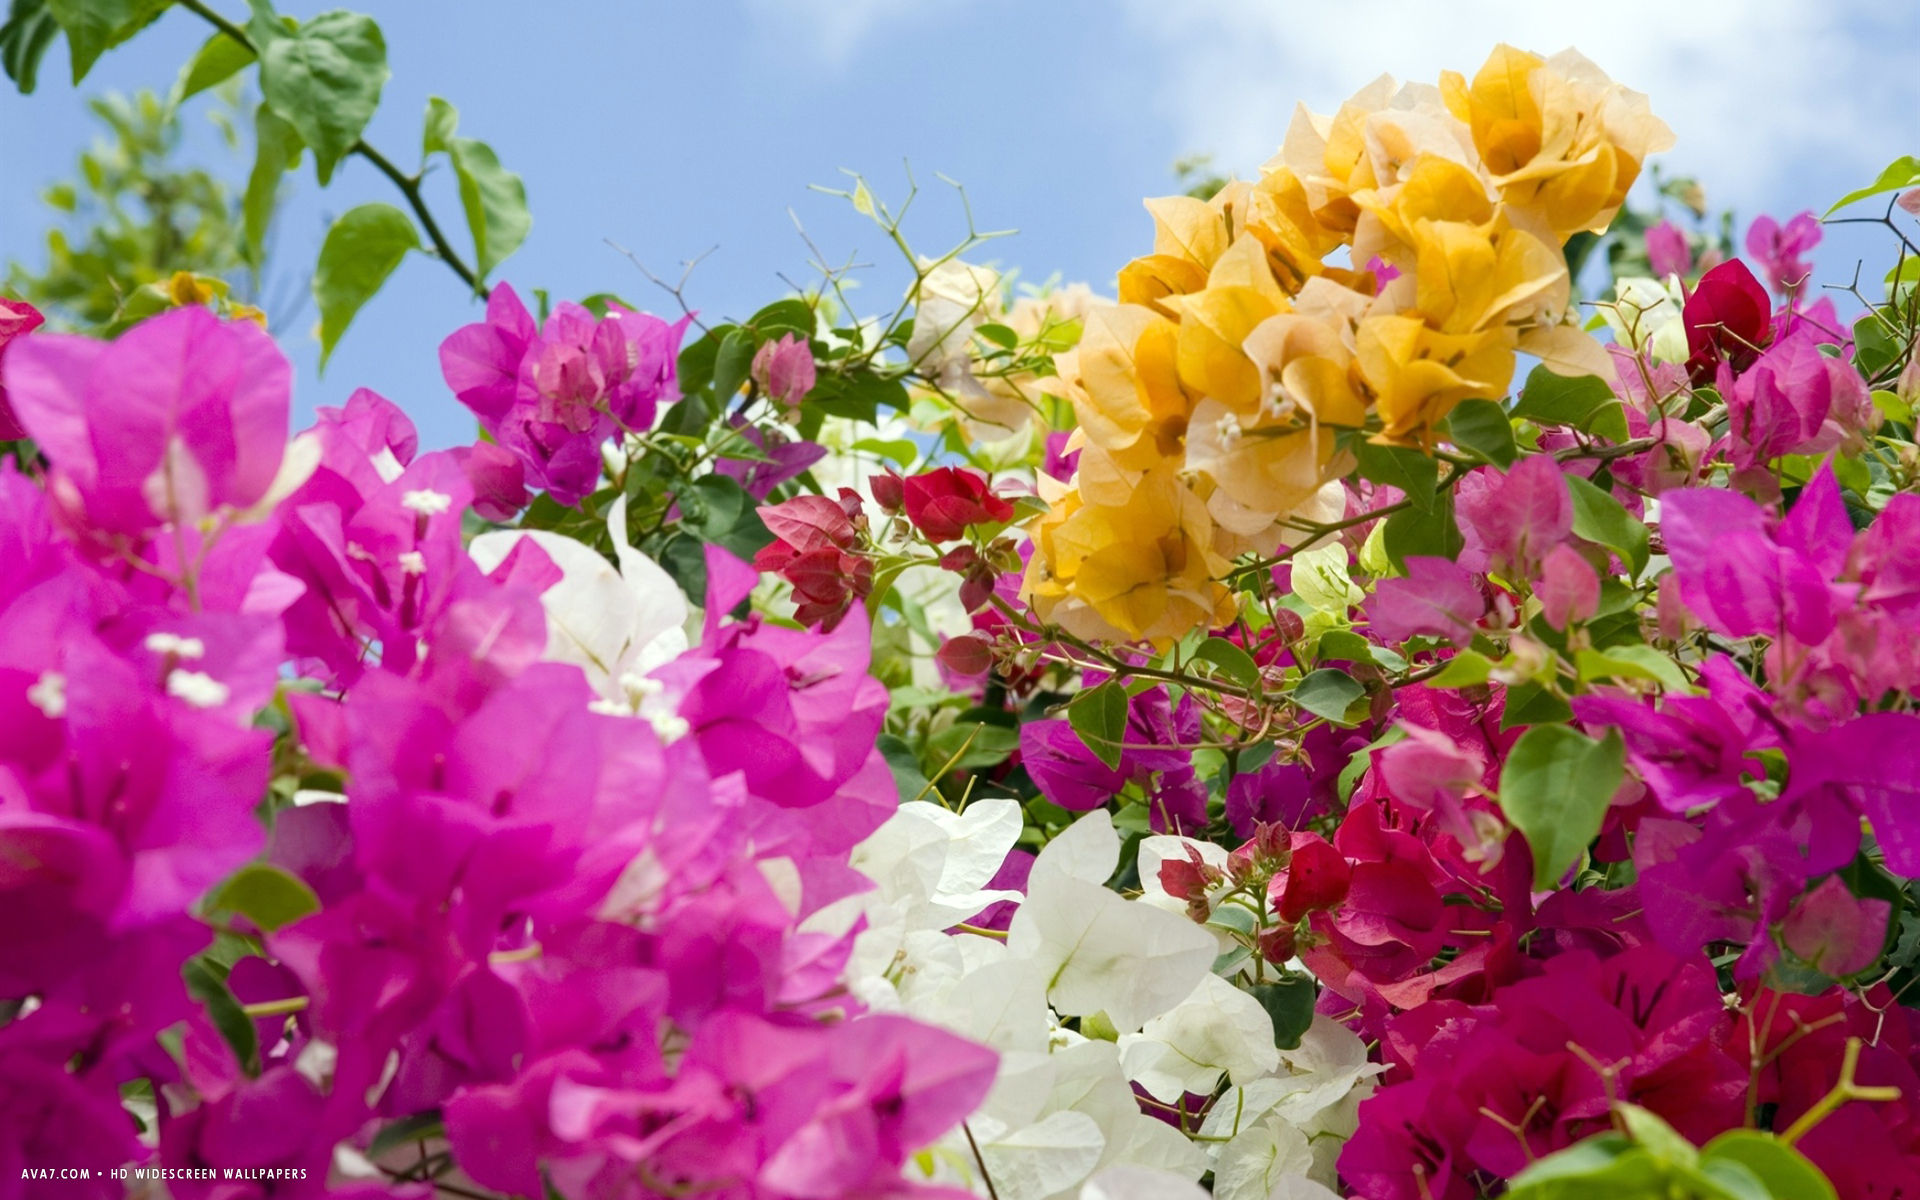 Bougainvillea Wallpaper Bougainvillea Flower Hd Widescreen Wallpaper Flowers Backgrounds